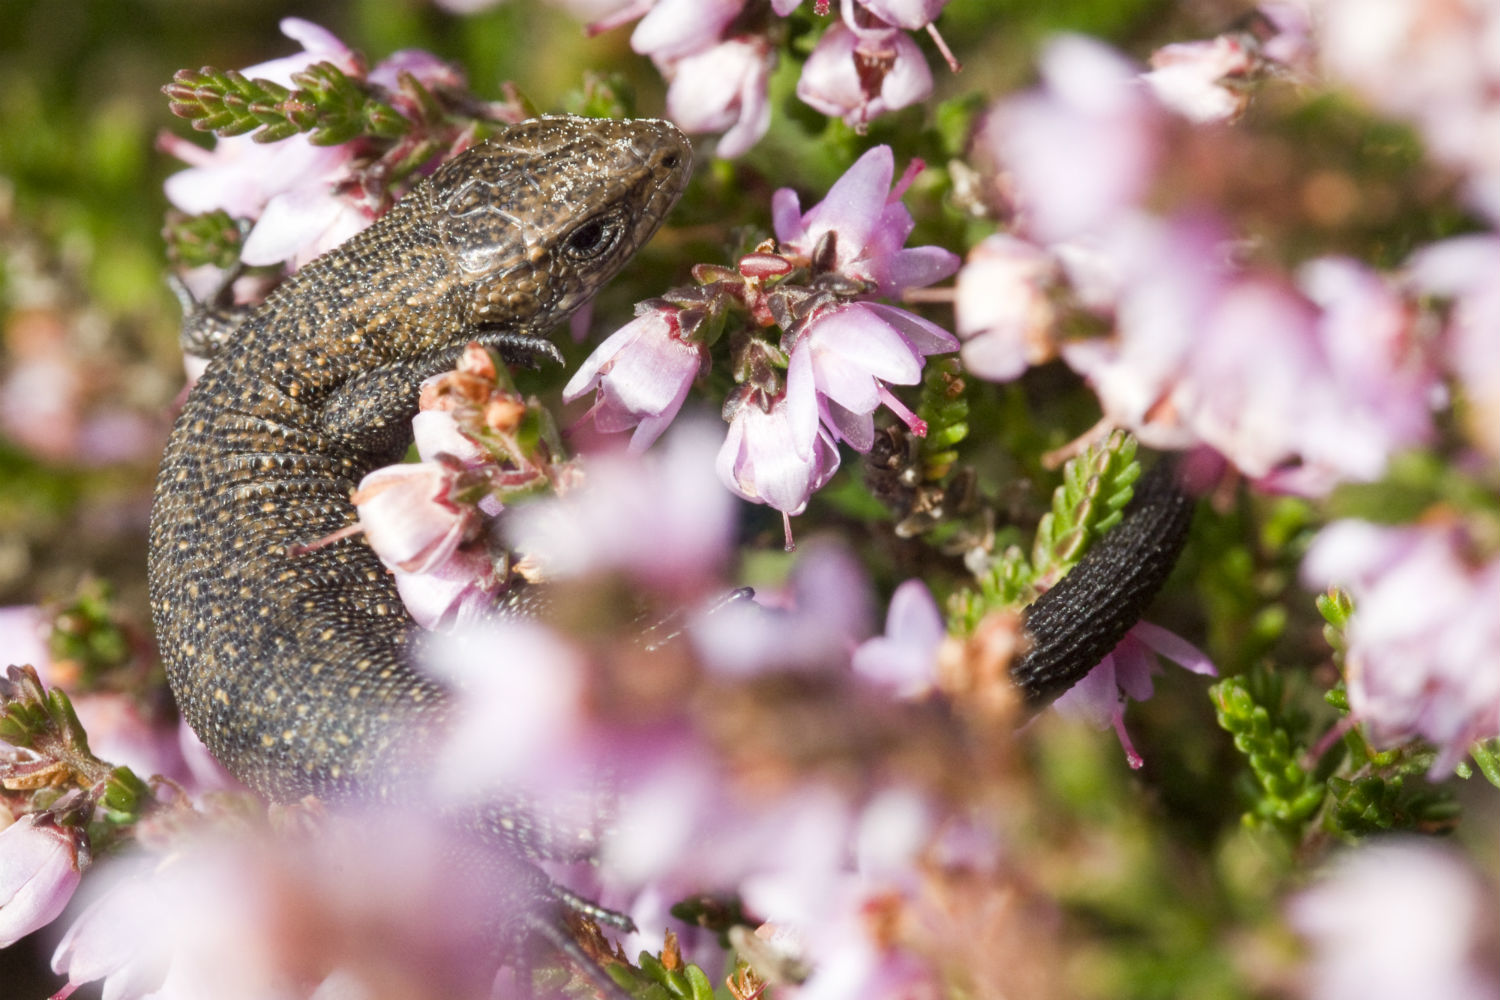 Common Lizard sat within a flowering plant